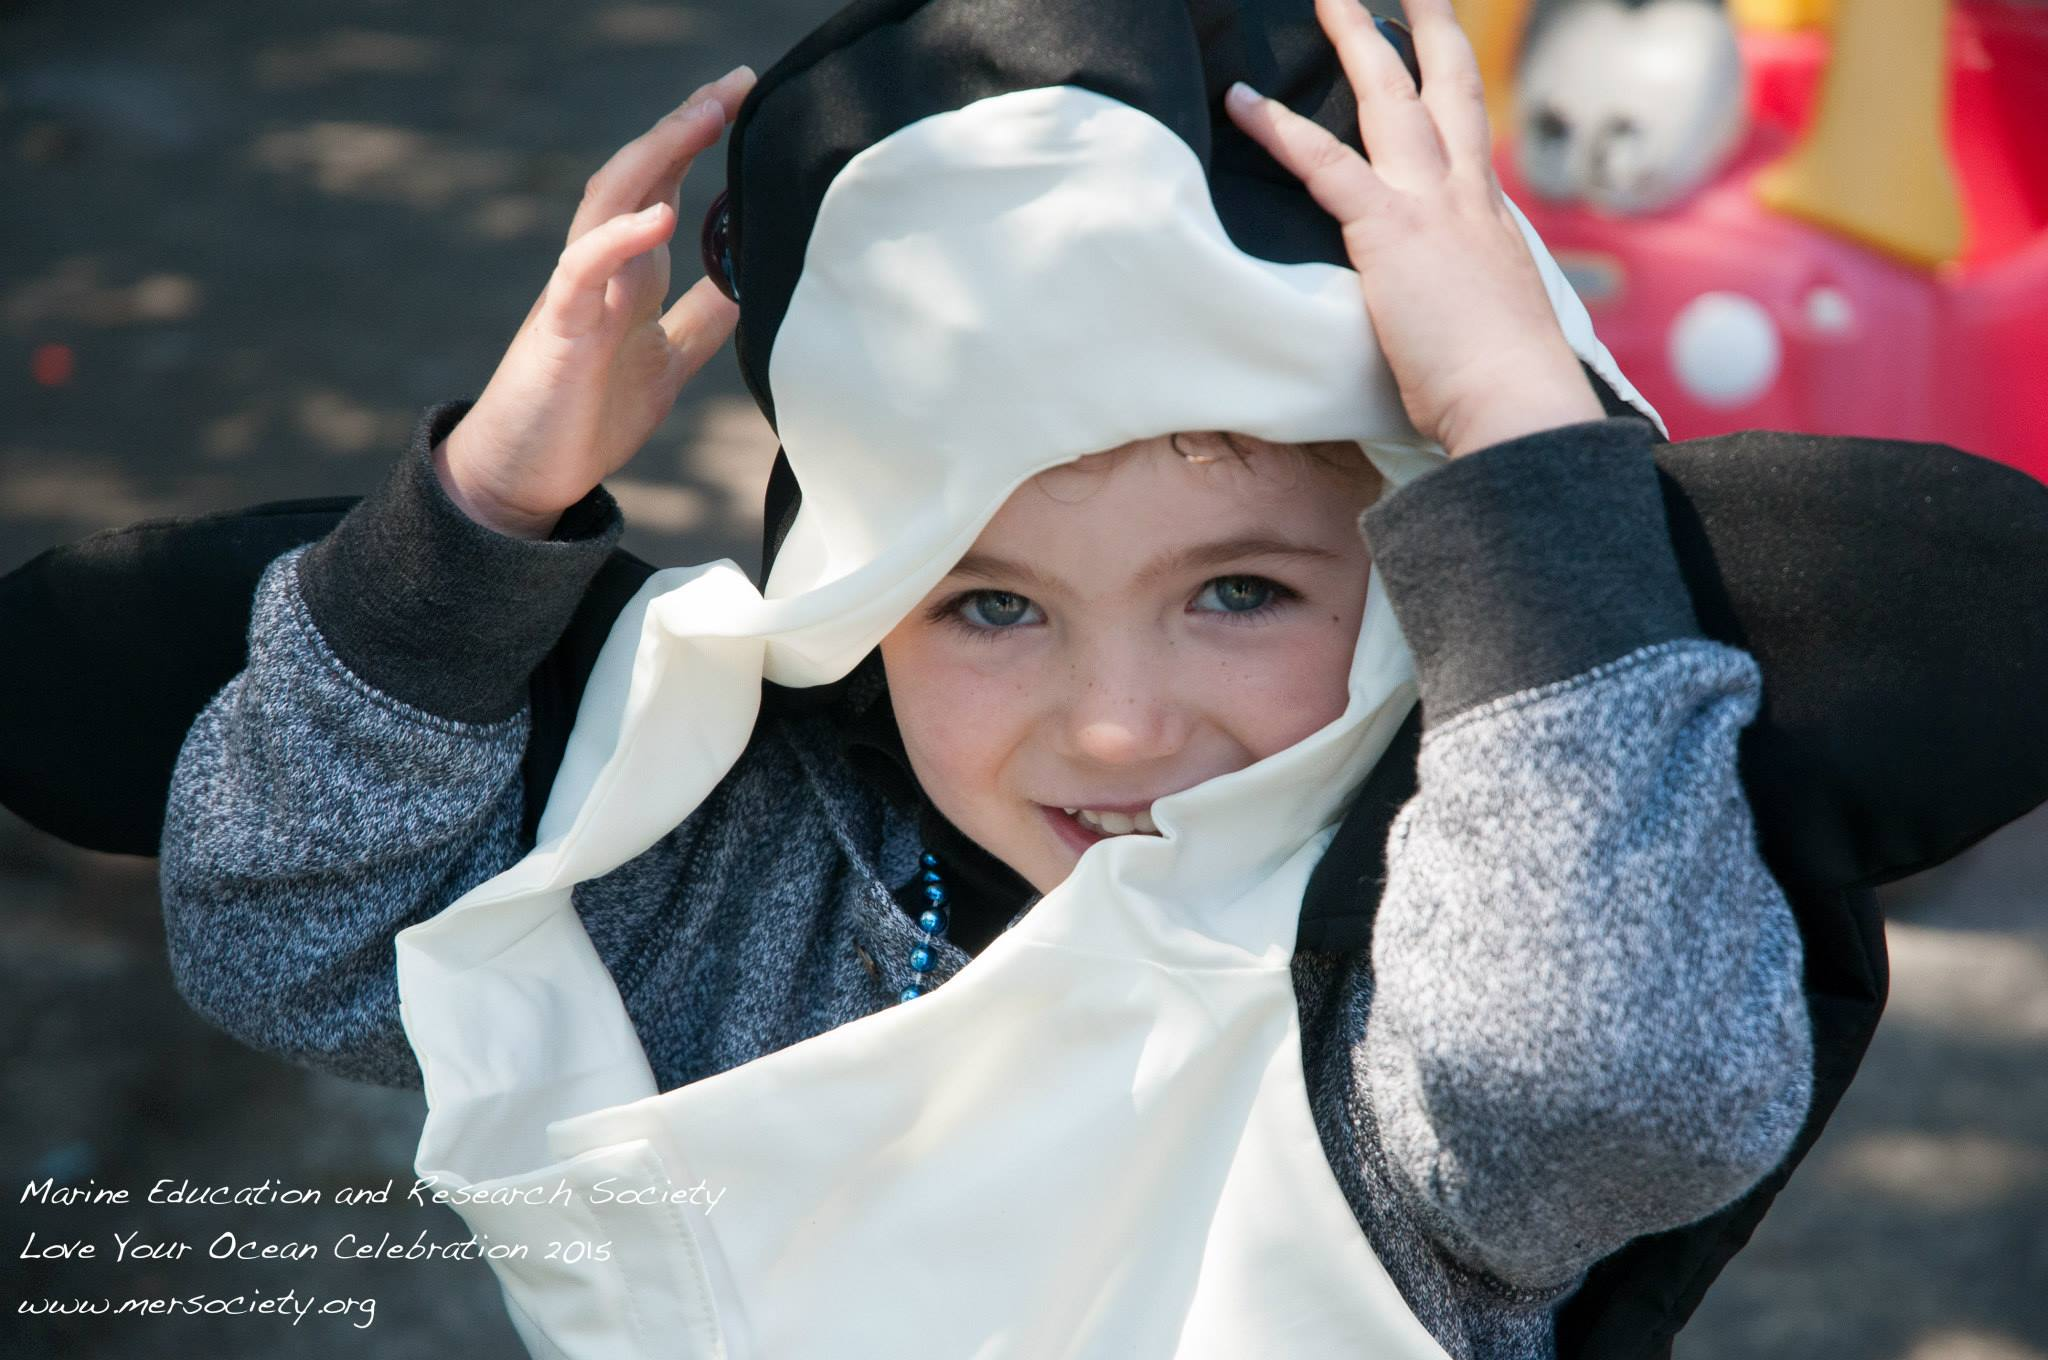 Child wearing whale costume